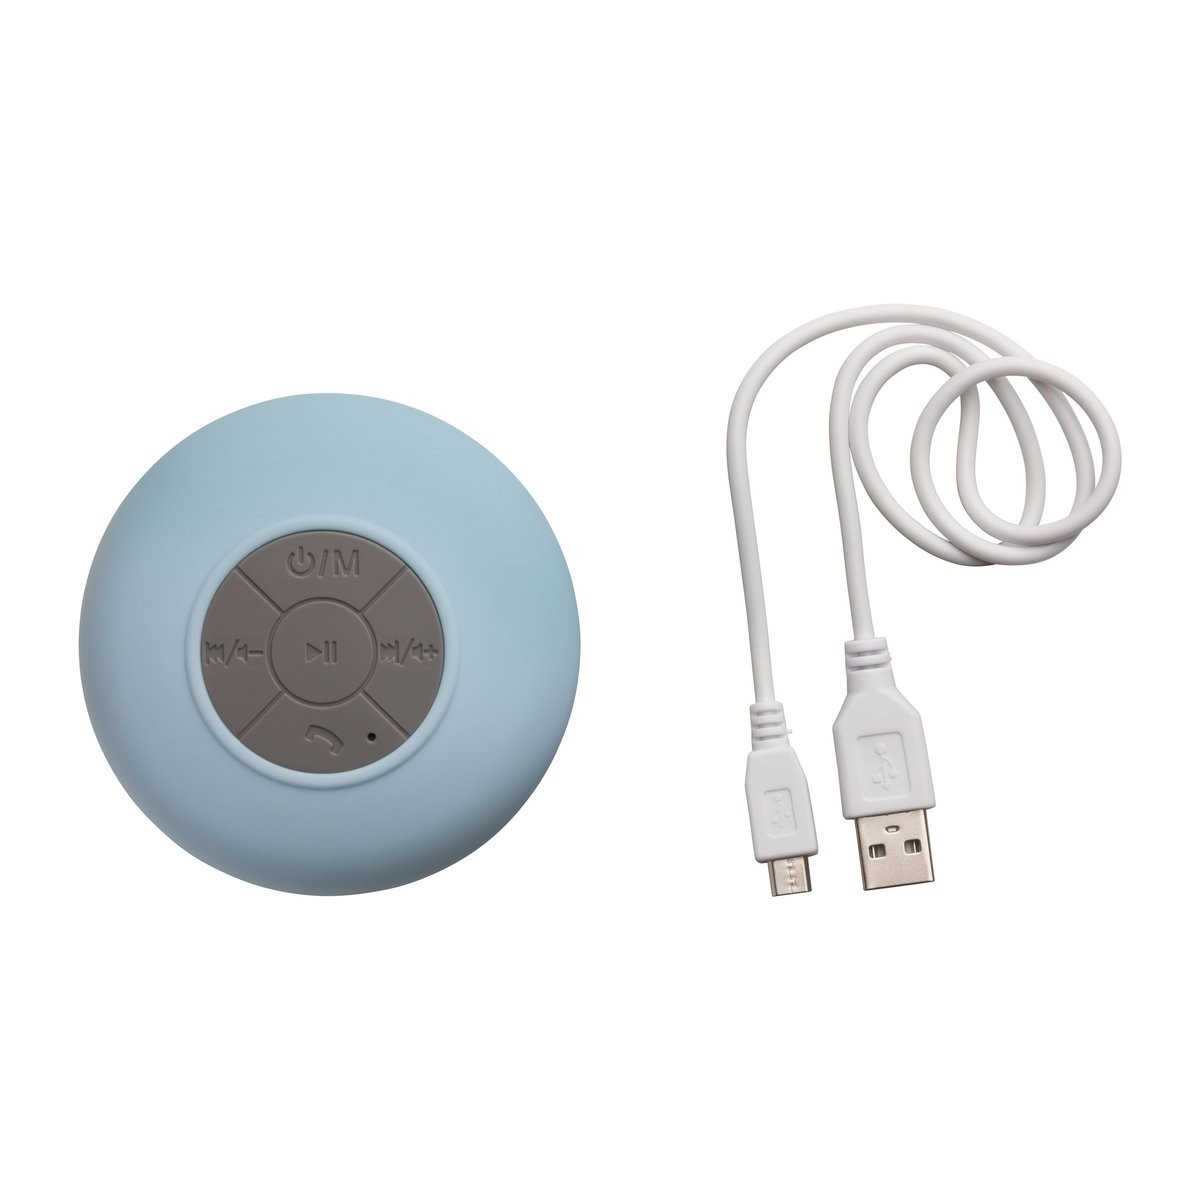 Bluetooth® Duschlautsprecher mit Radio REFLECTS-AVIGNON LIGHT BLUE, Ansicht 4